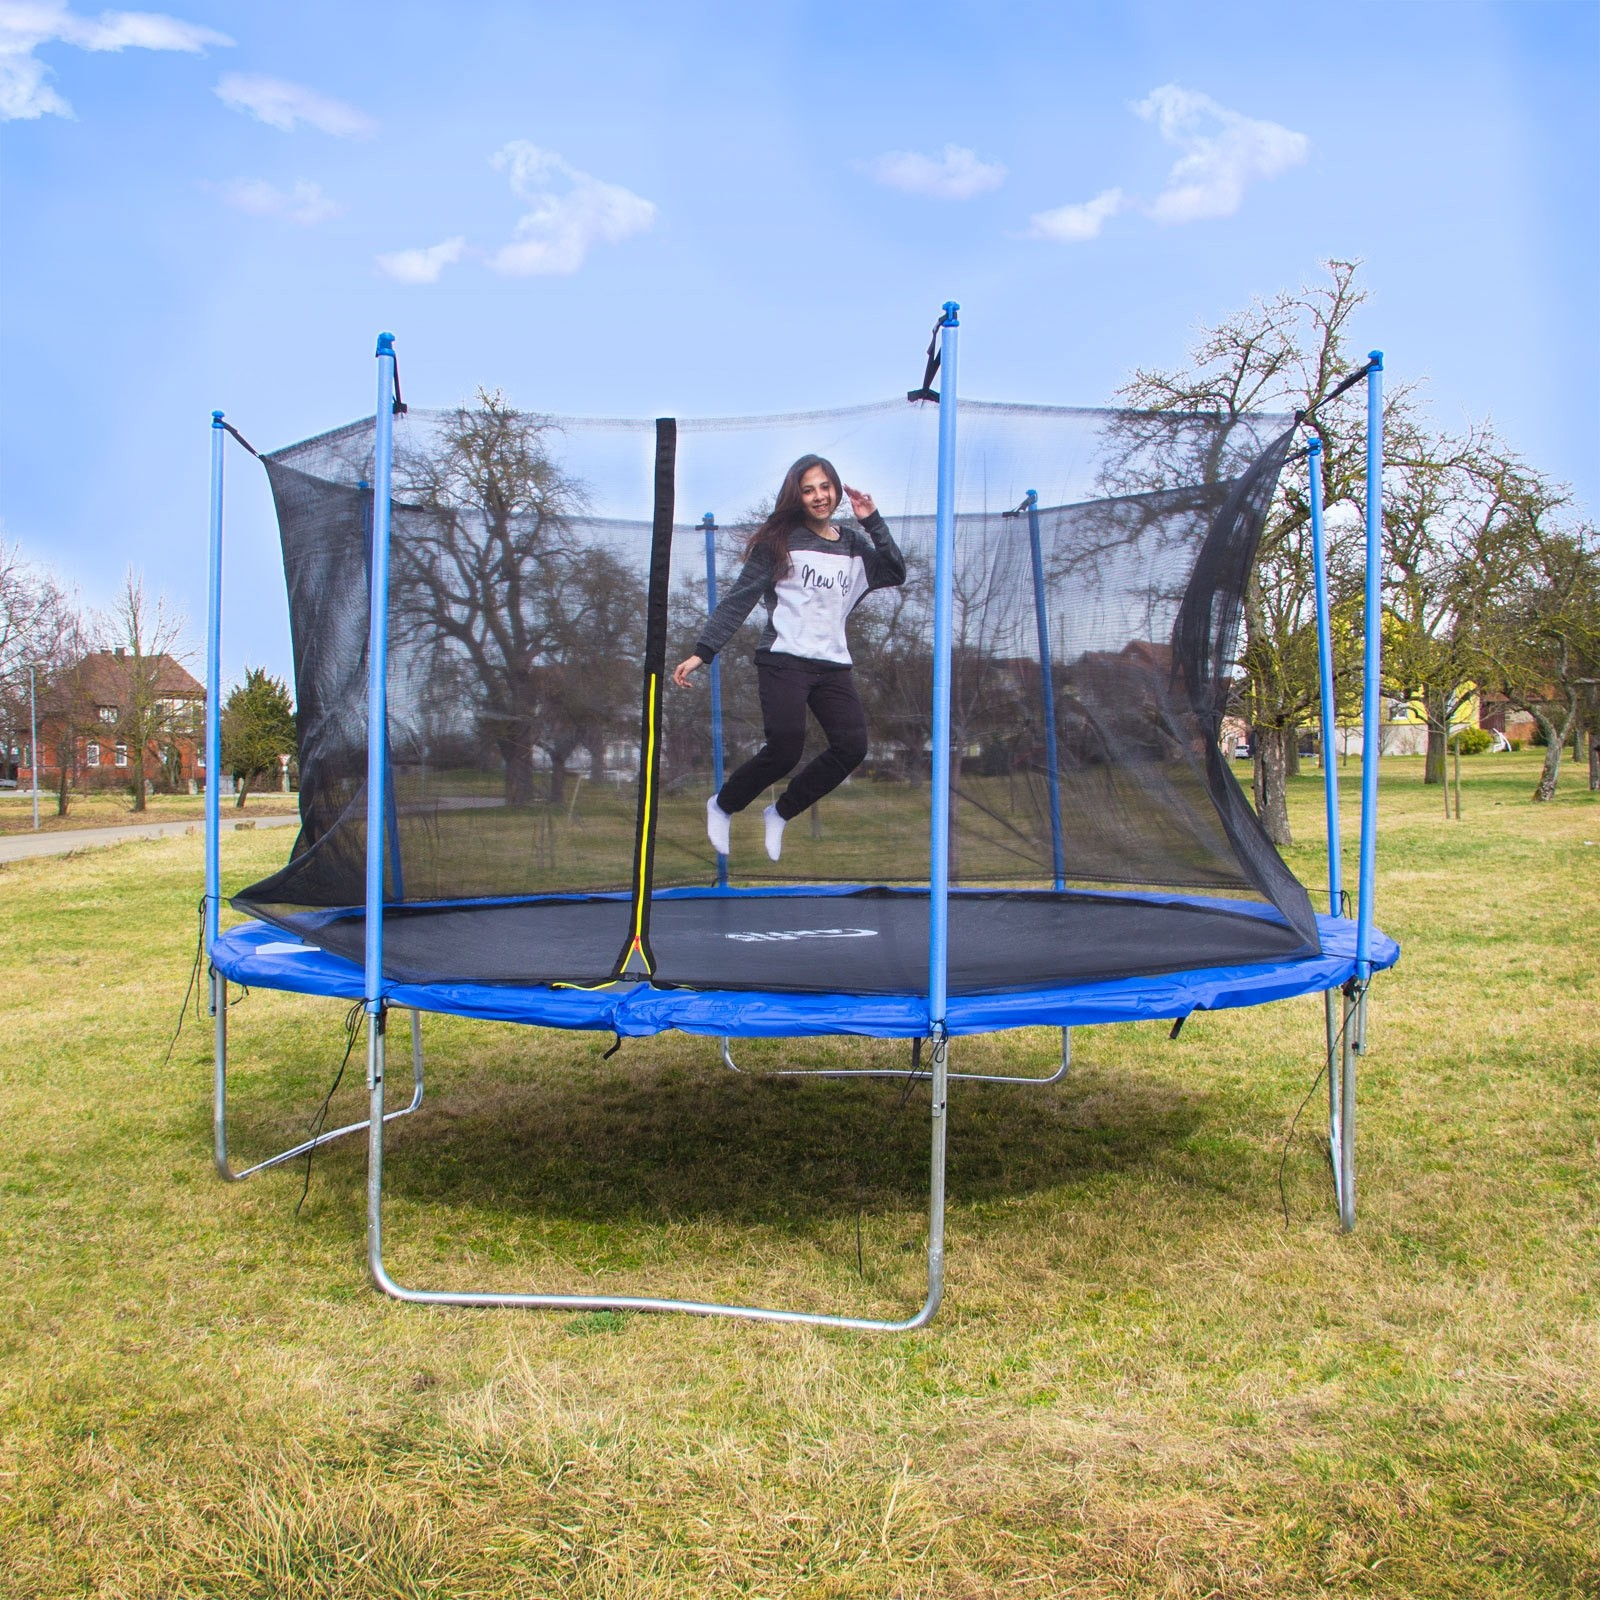 riesen trampolin gartentrampolin xxl 426 cm mit sicherheitsnetz. Black Bedroom Furniture Sets. Home Design Ideas